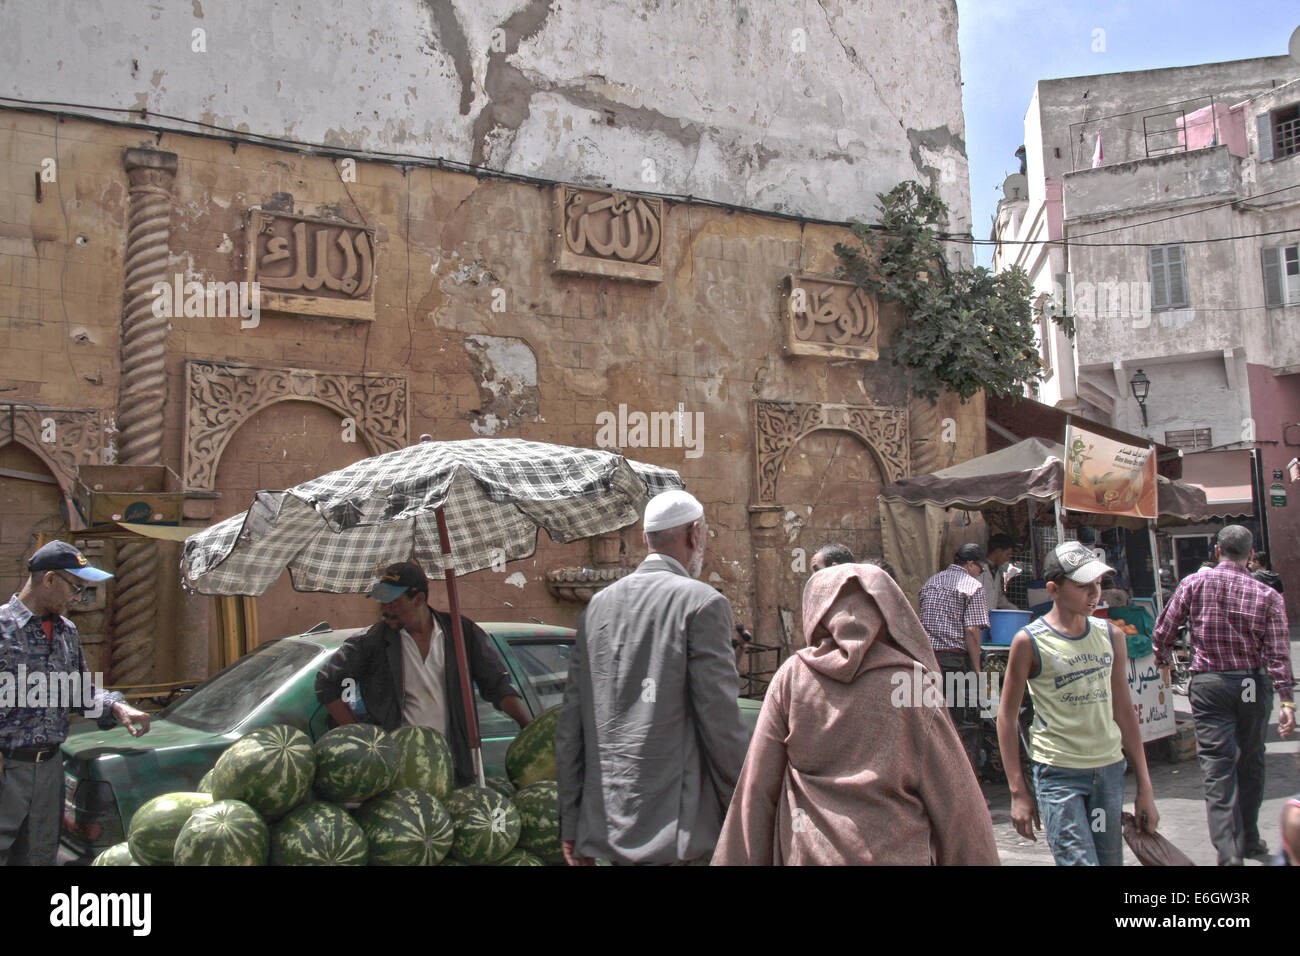 Market in Arabic district with Koren writhing on the wall. - Stock Image